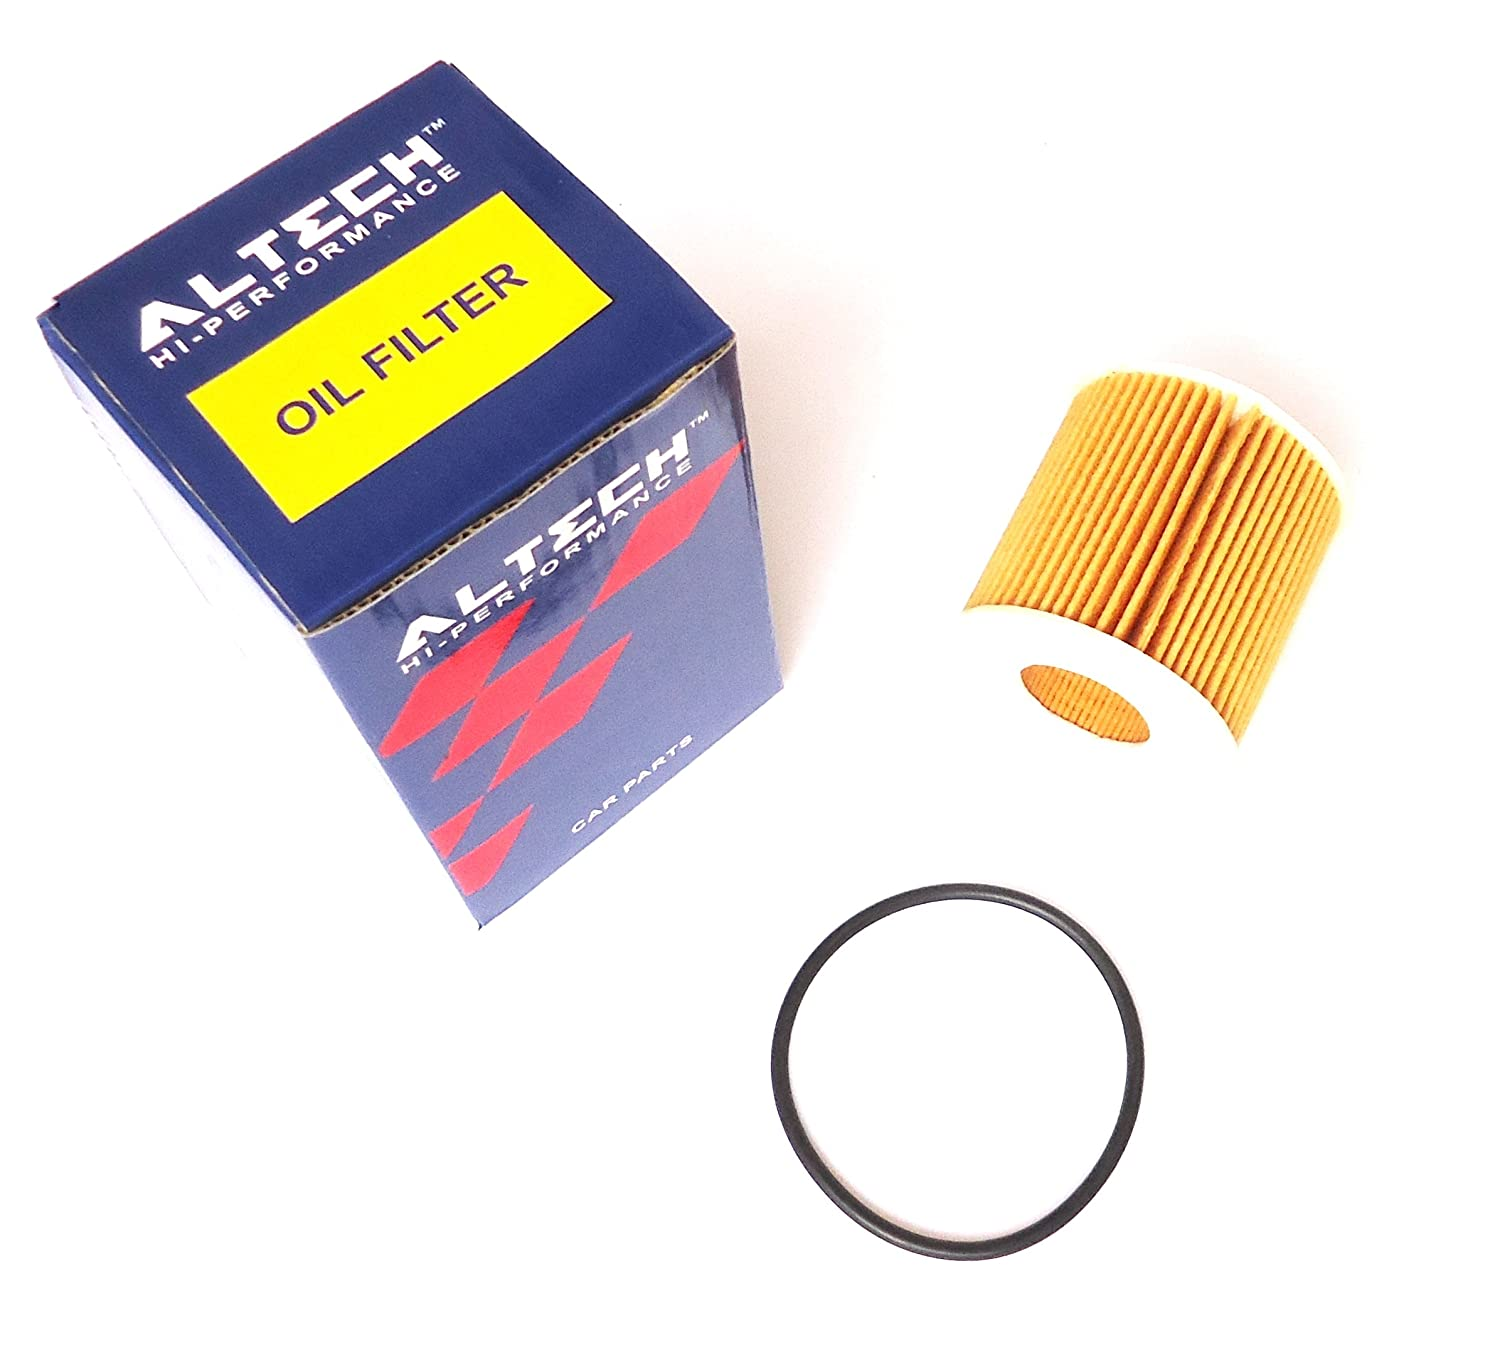 Oil filters buy oil filters online at best prices in india amazon altech hi performance oil filter for vw polo petrol fandeluxe Images